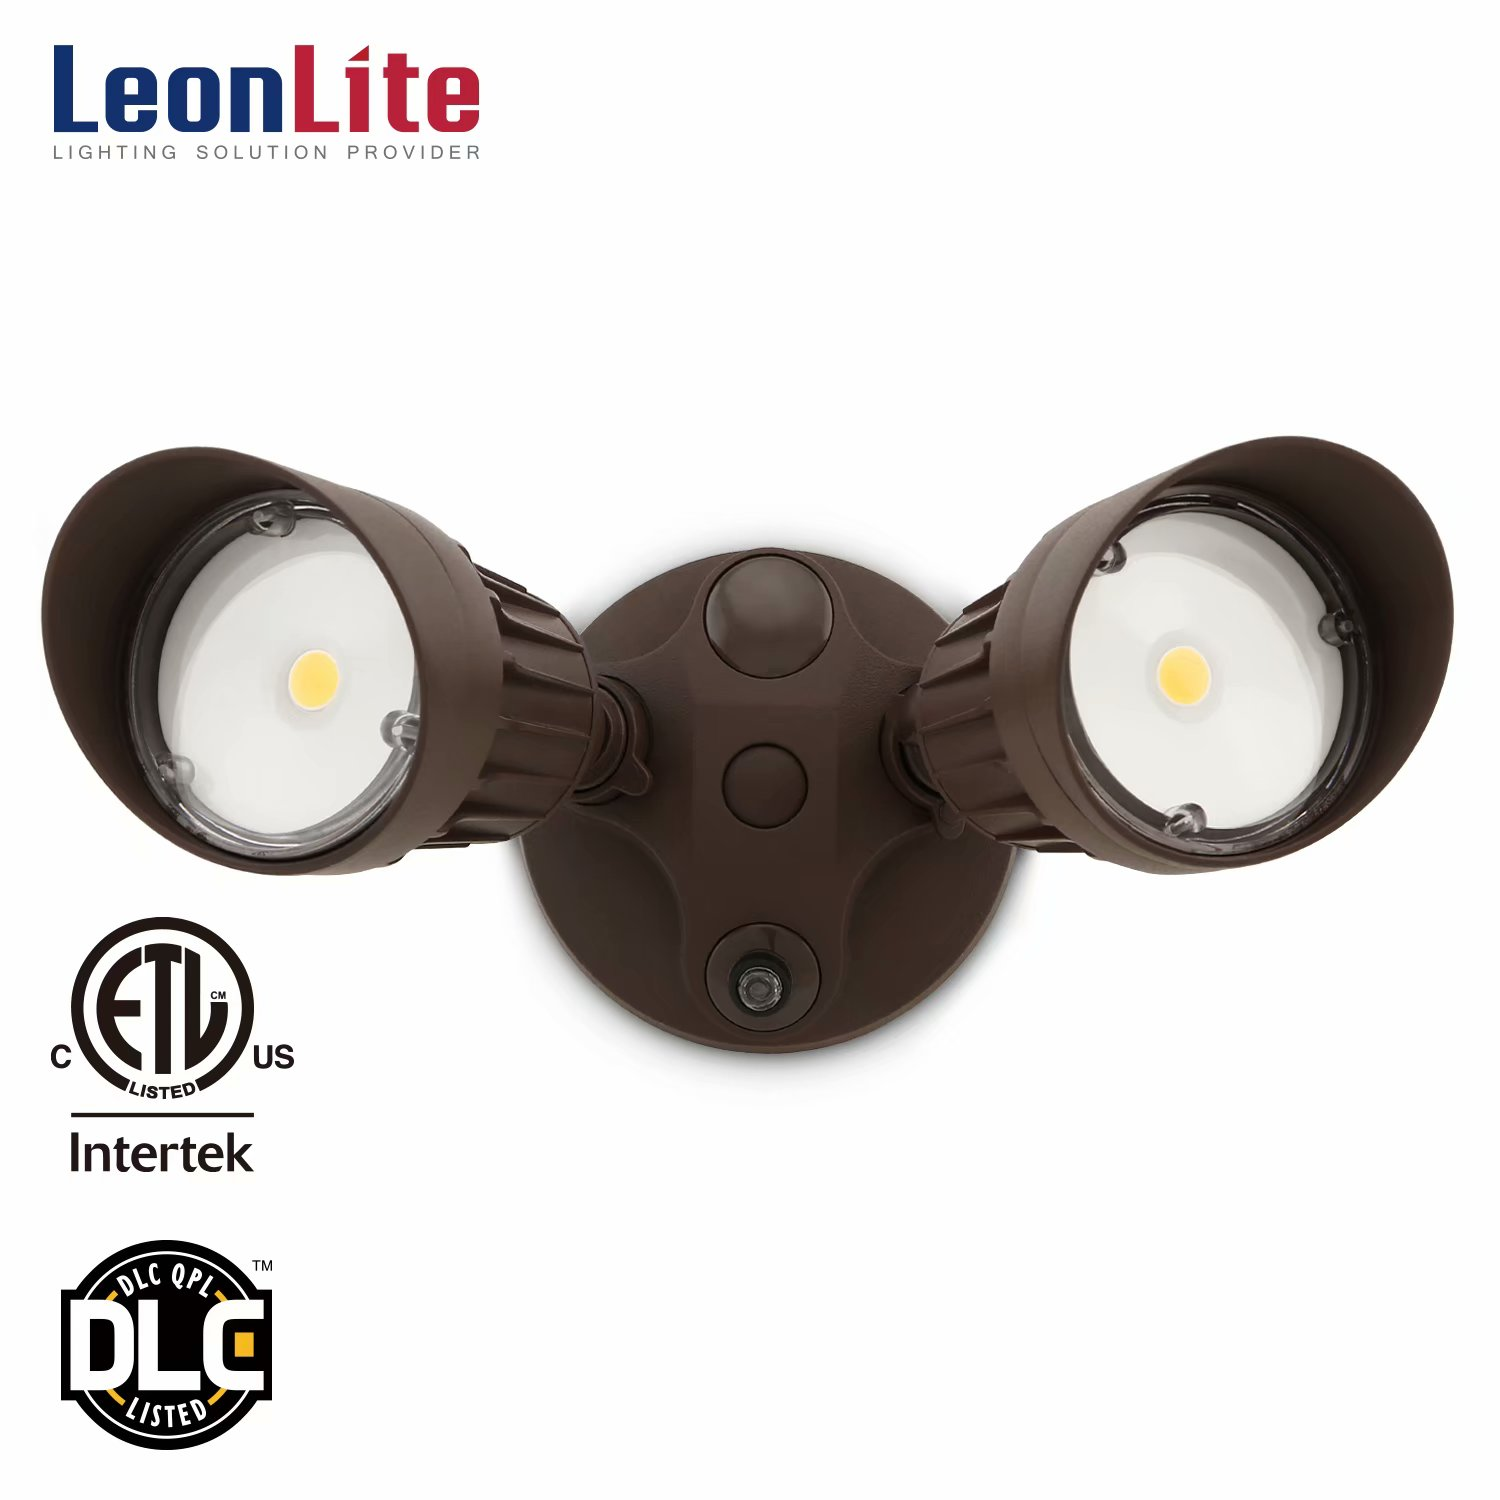 LEONLITE 20W Two-head LED Outdoor Security Light, Dusk to Dawn Photocell, 1800lm LED Flood Light for Yard, Garage, Porch, Entryways, Porch, 5000K Daylight, Bronze